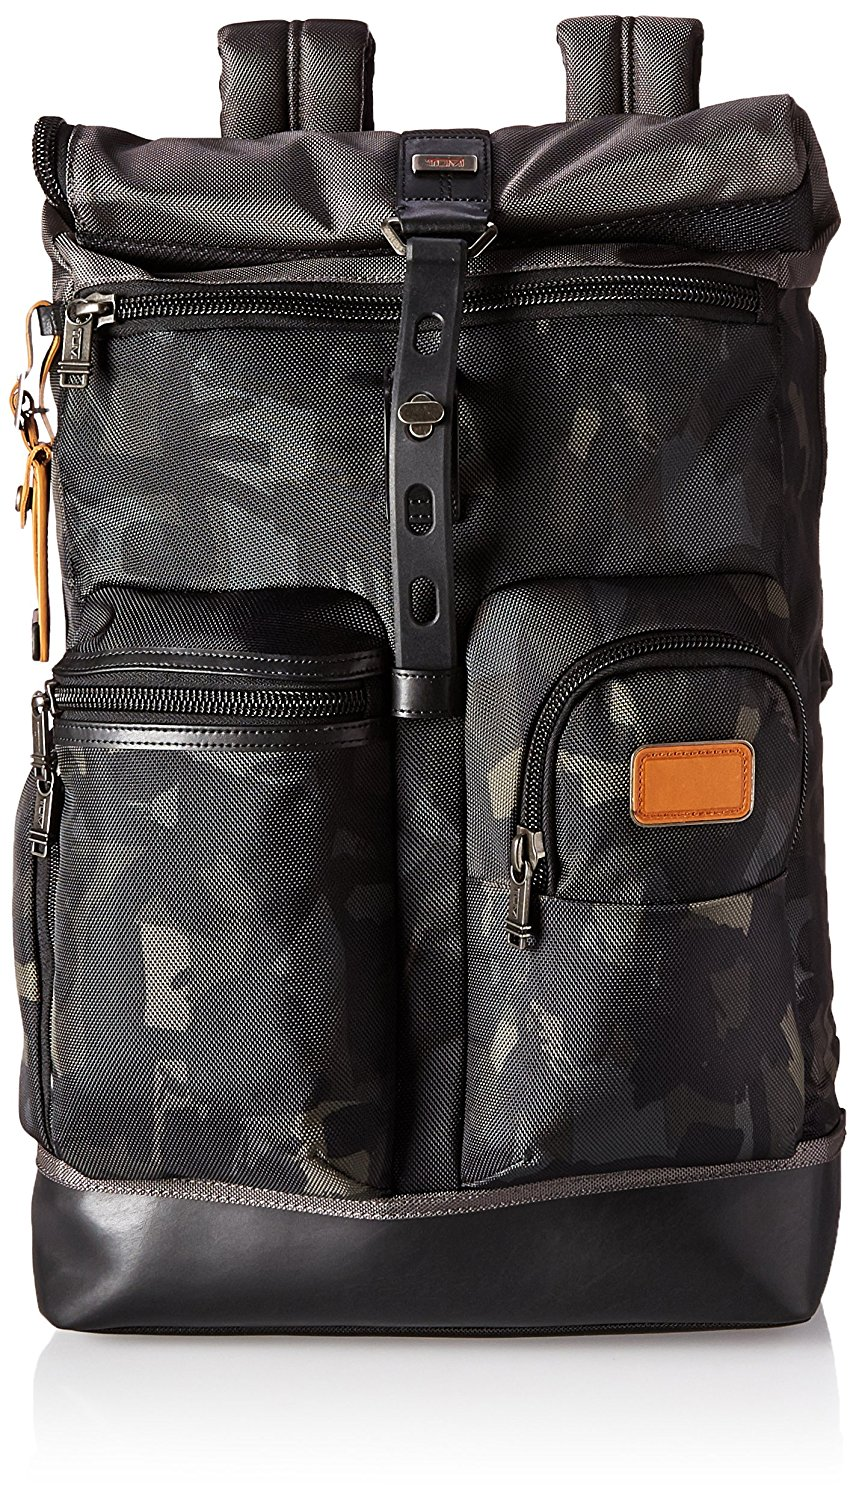 Buy Tumi Alpha Bravo Luke Roll-Top Backpack in Cheap Price on ... 7050aa02b6a41